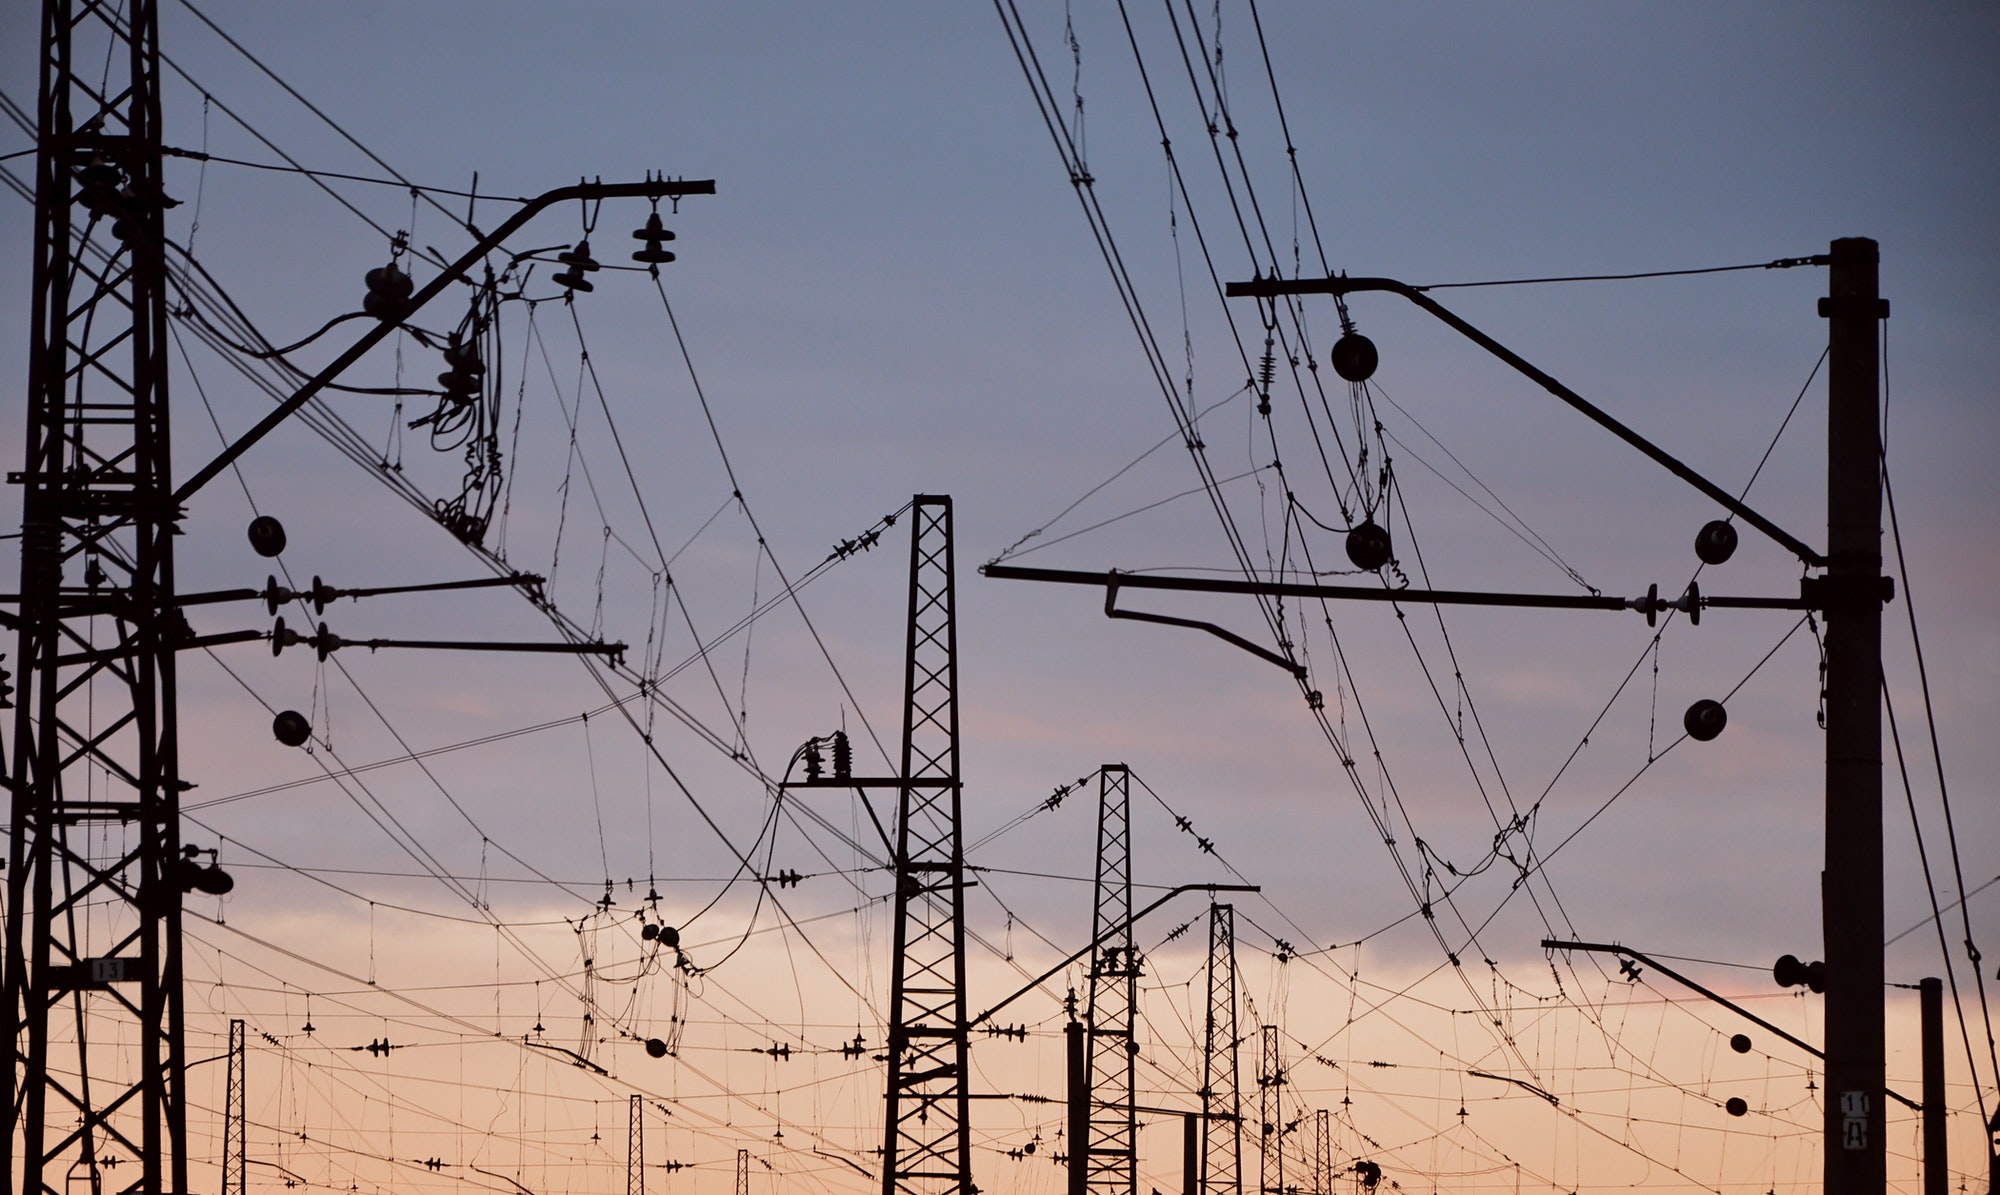 Railroad overhead lines against clear blue sky, Contact wire